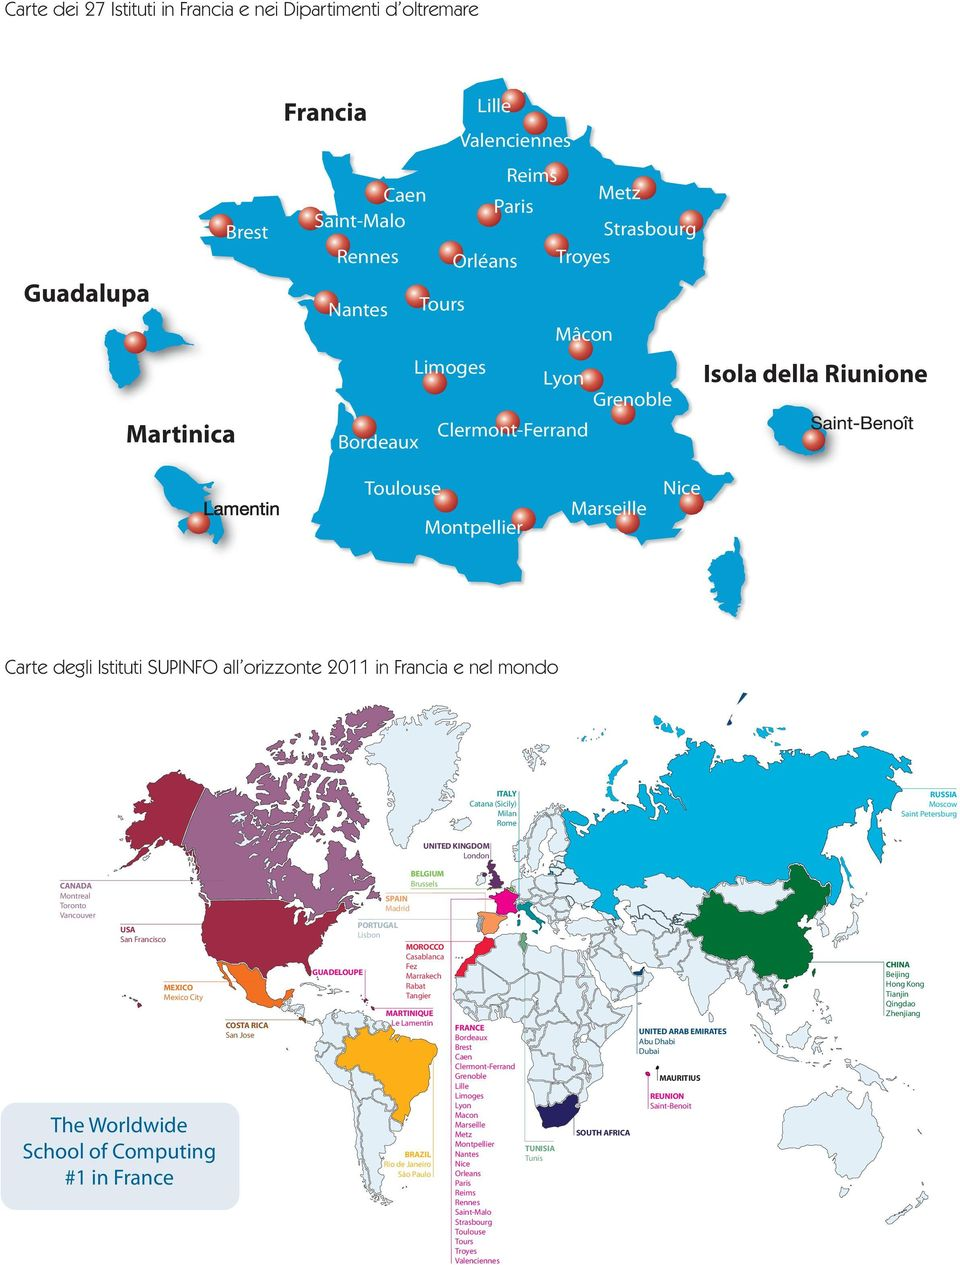 Francia e nel mondo SUPINFO Schools 2008-2011 in France and Worldwide ITALY Catana (Sicily) Milan Rome RUSSIA Moscow Saint Petersburg UNITED KINGDOM London CANADA Montreal Toronto Vancouver USA San